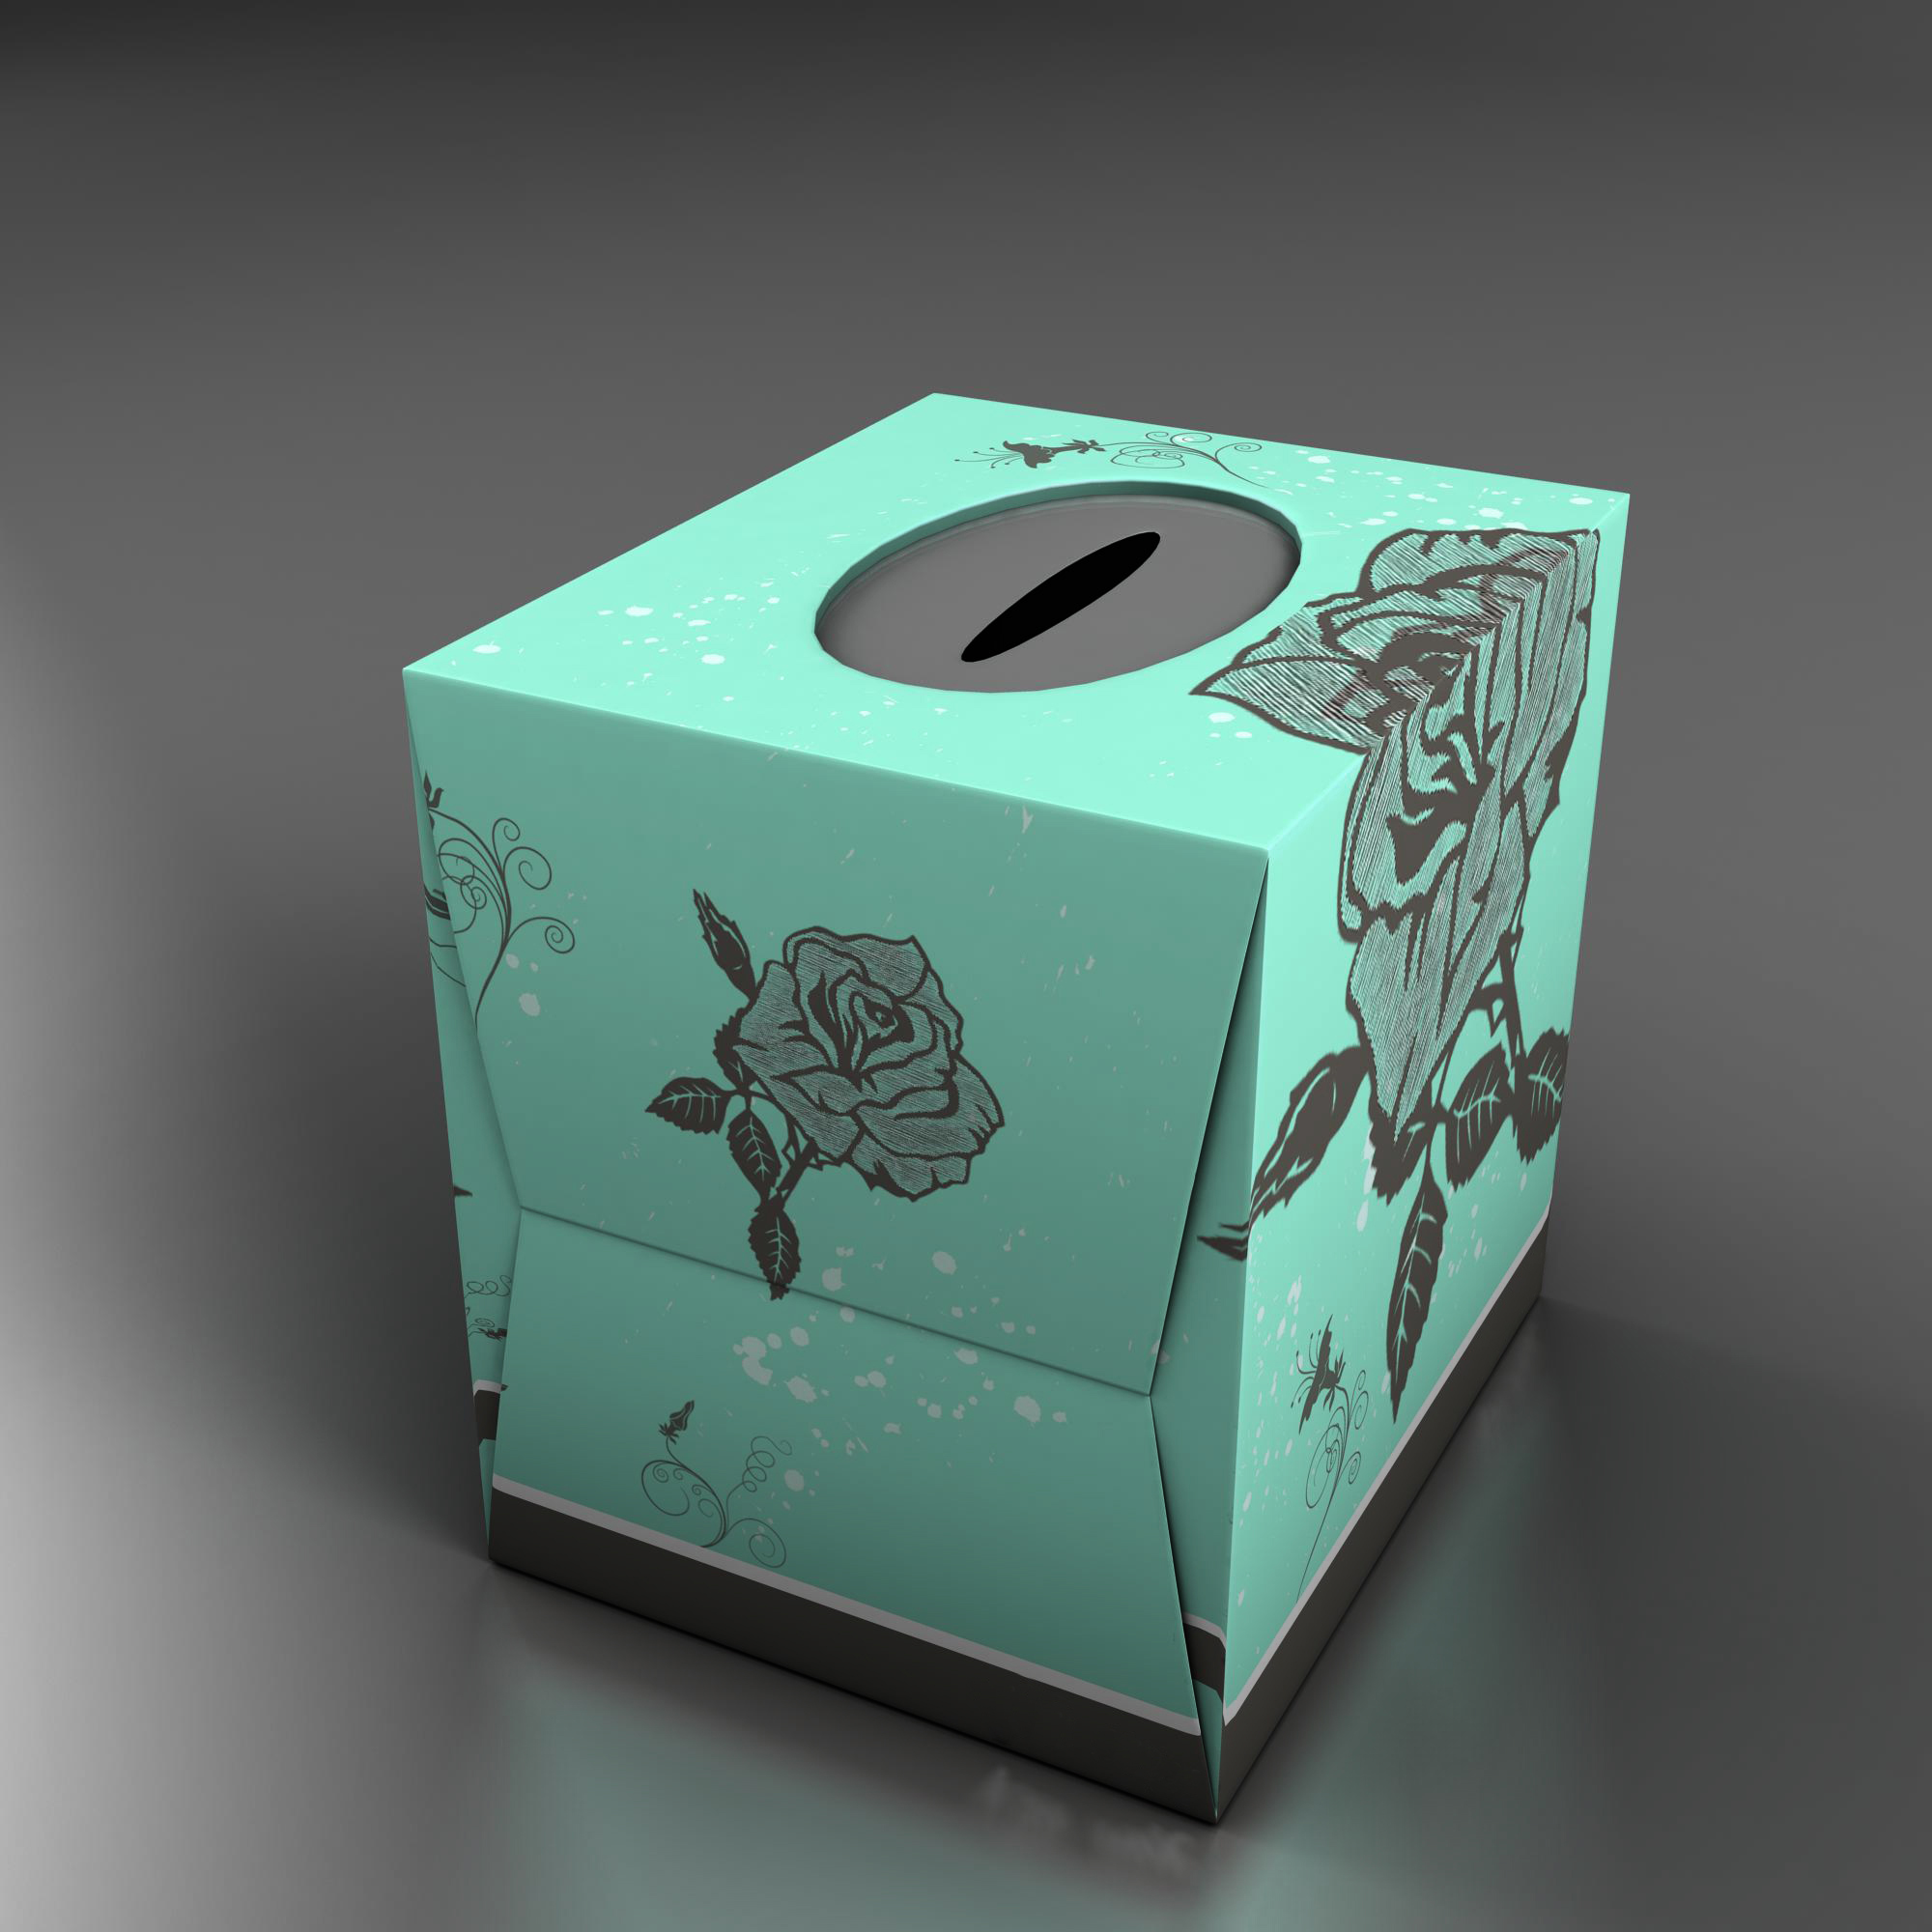 Teal tkanivo box s ružami 3d model 3ds max fbx ma mb obj 157245